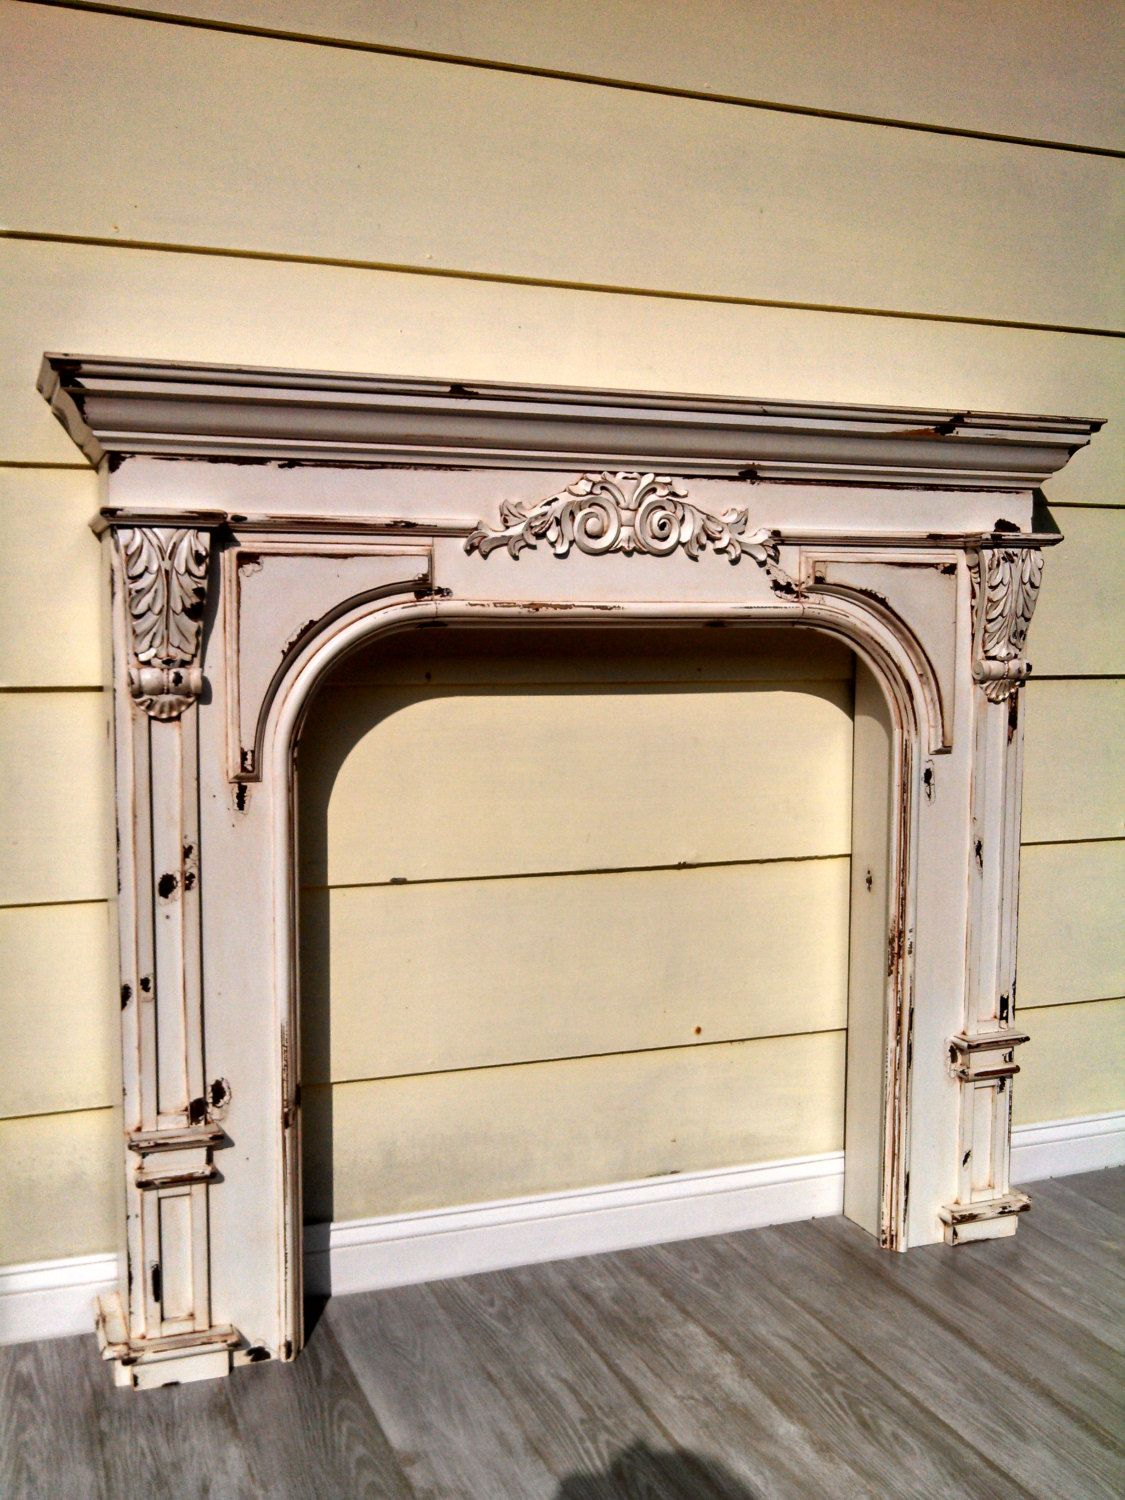 Vintage French Country Farmhouse Fireplace by RedClayWoodworks - Vintage French Country Farmhouse Fireplace By RedClayWoodworks